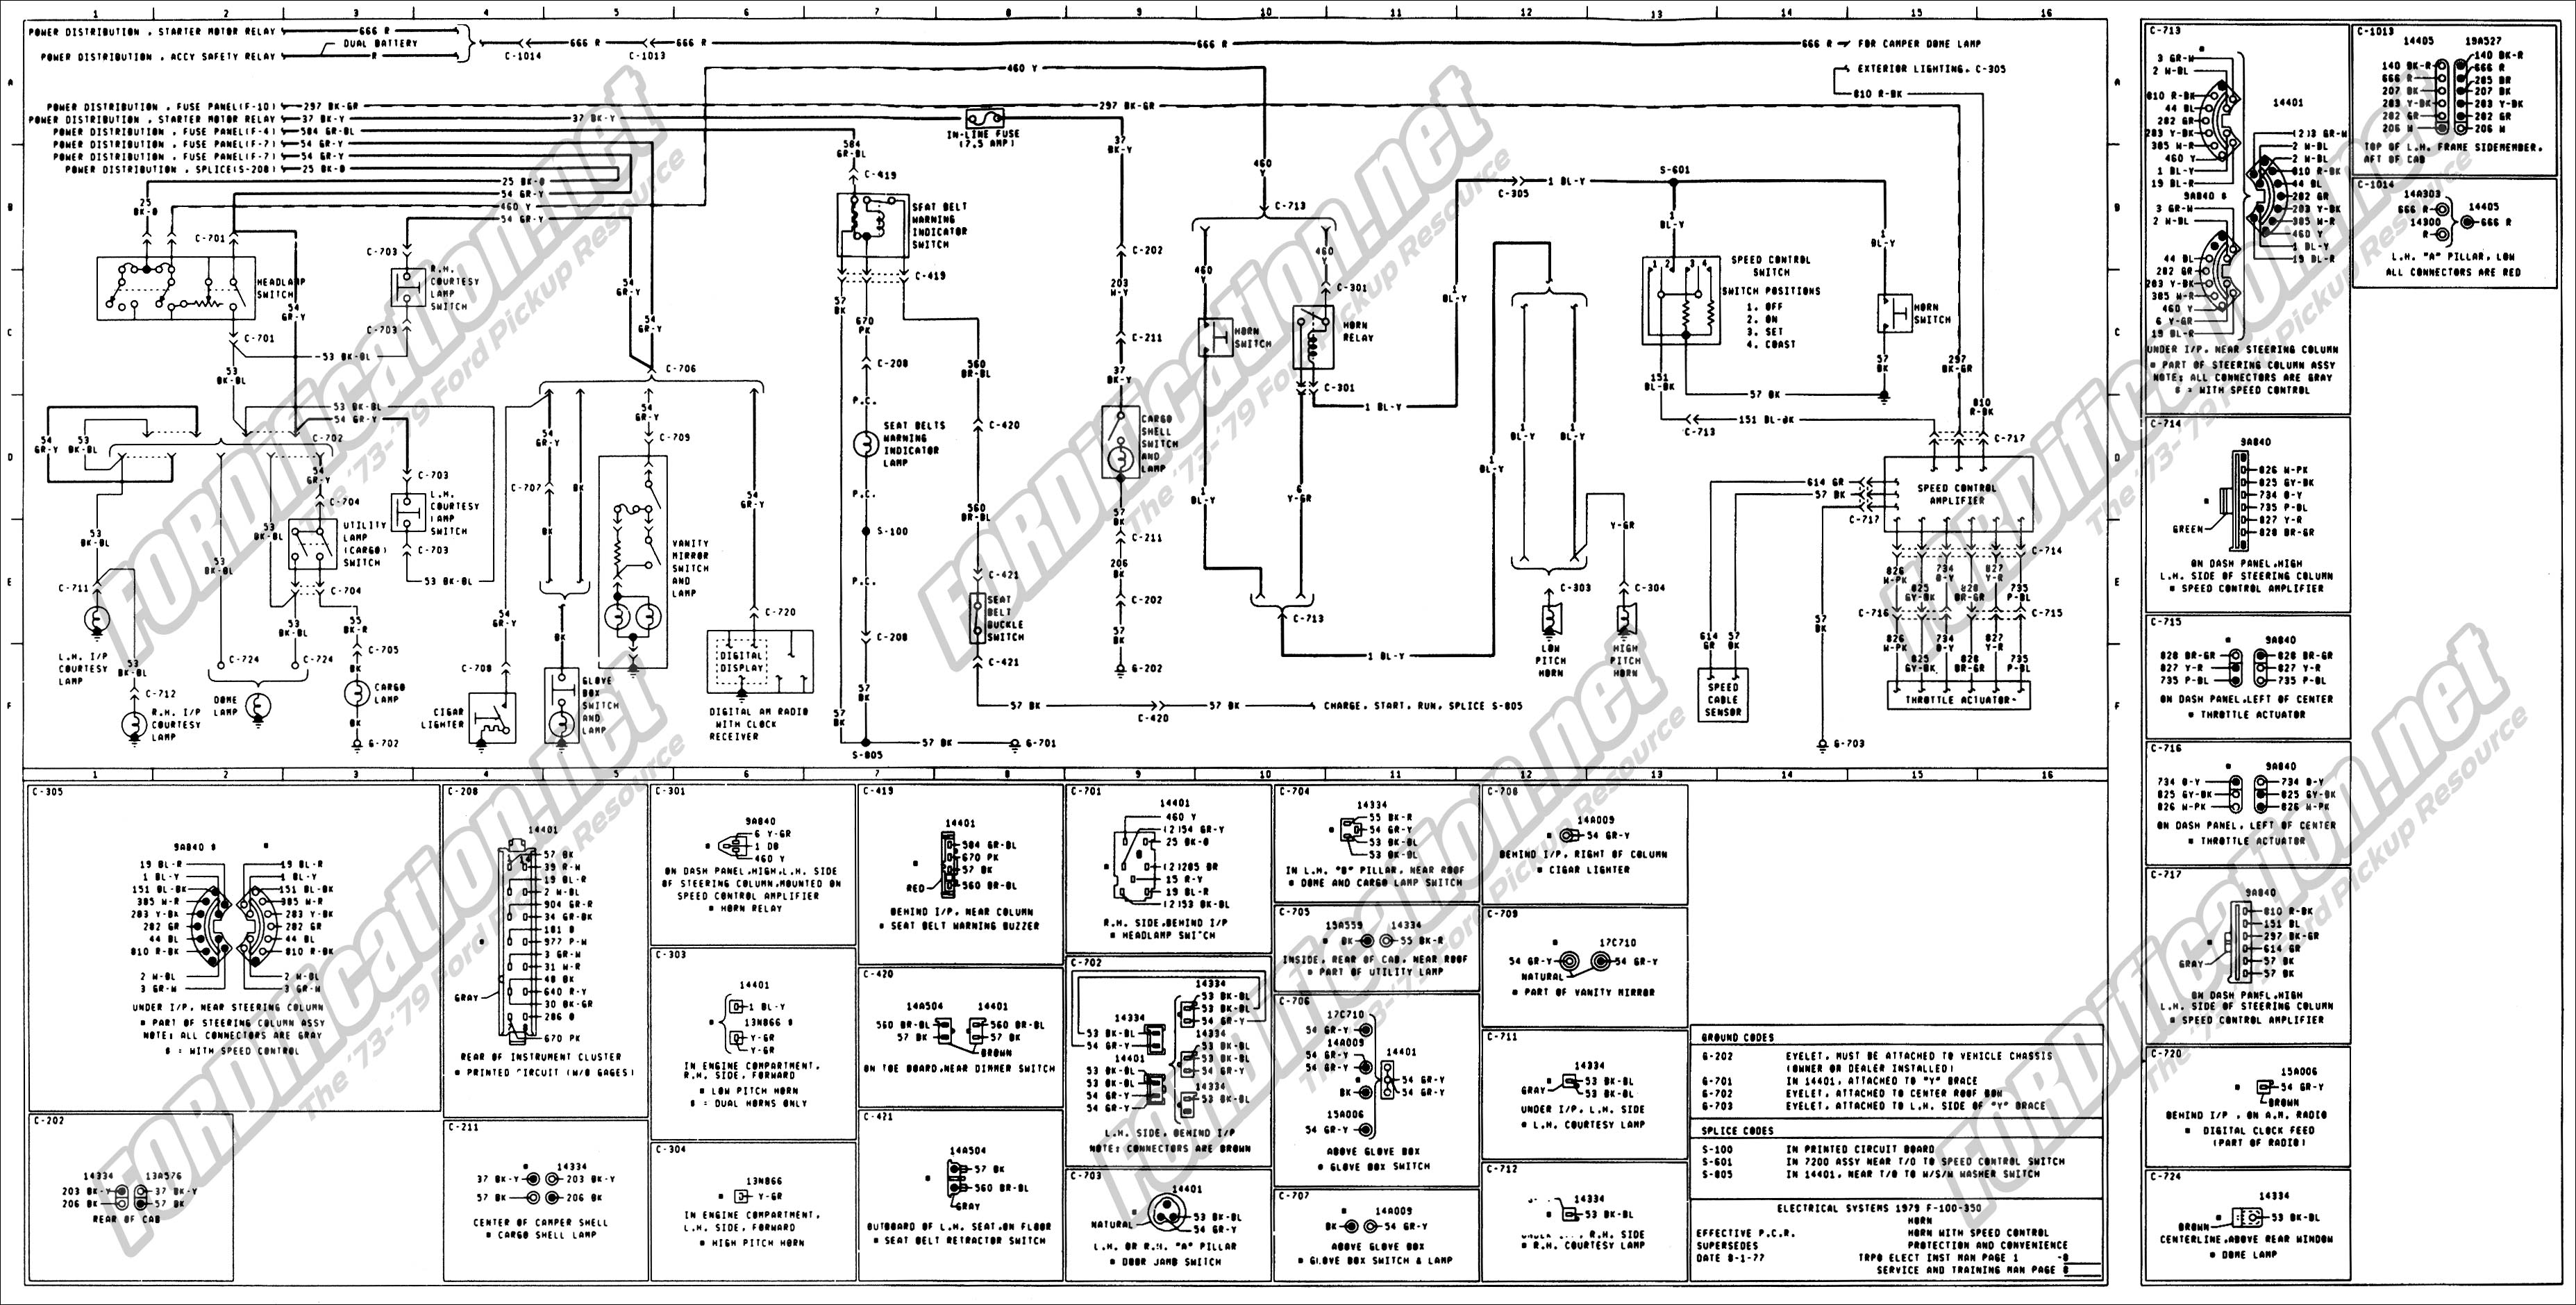 1979 f350 wiring diagram 1979 nova wiring diagram 1973-1979 ford truck wiring diagrams & schematics ... #8